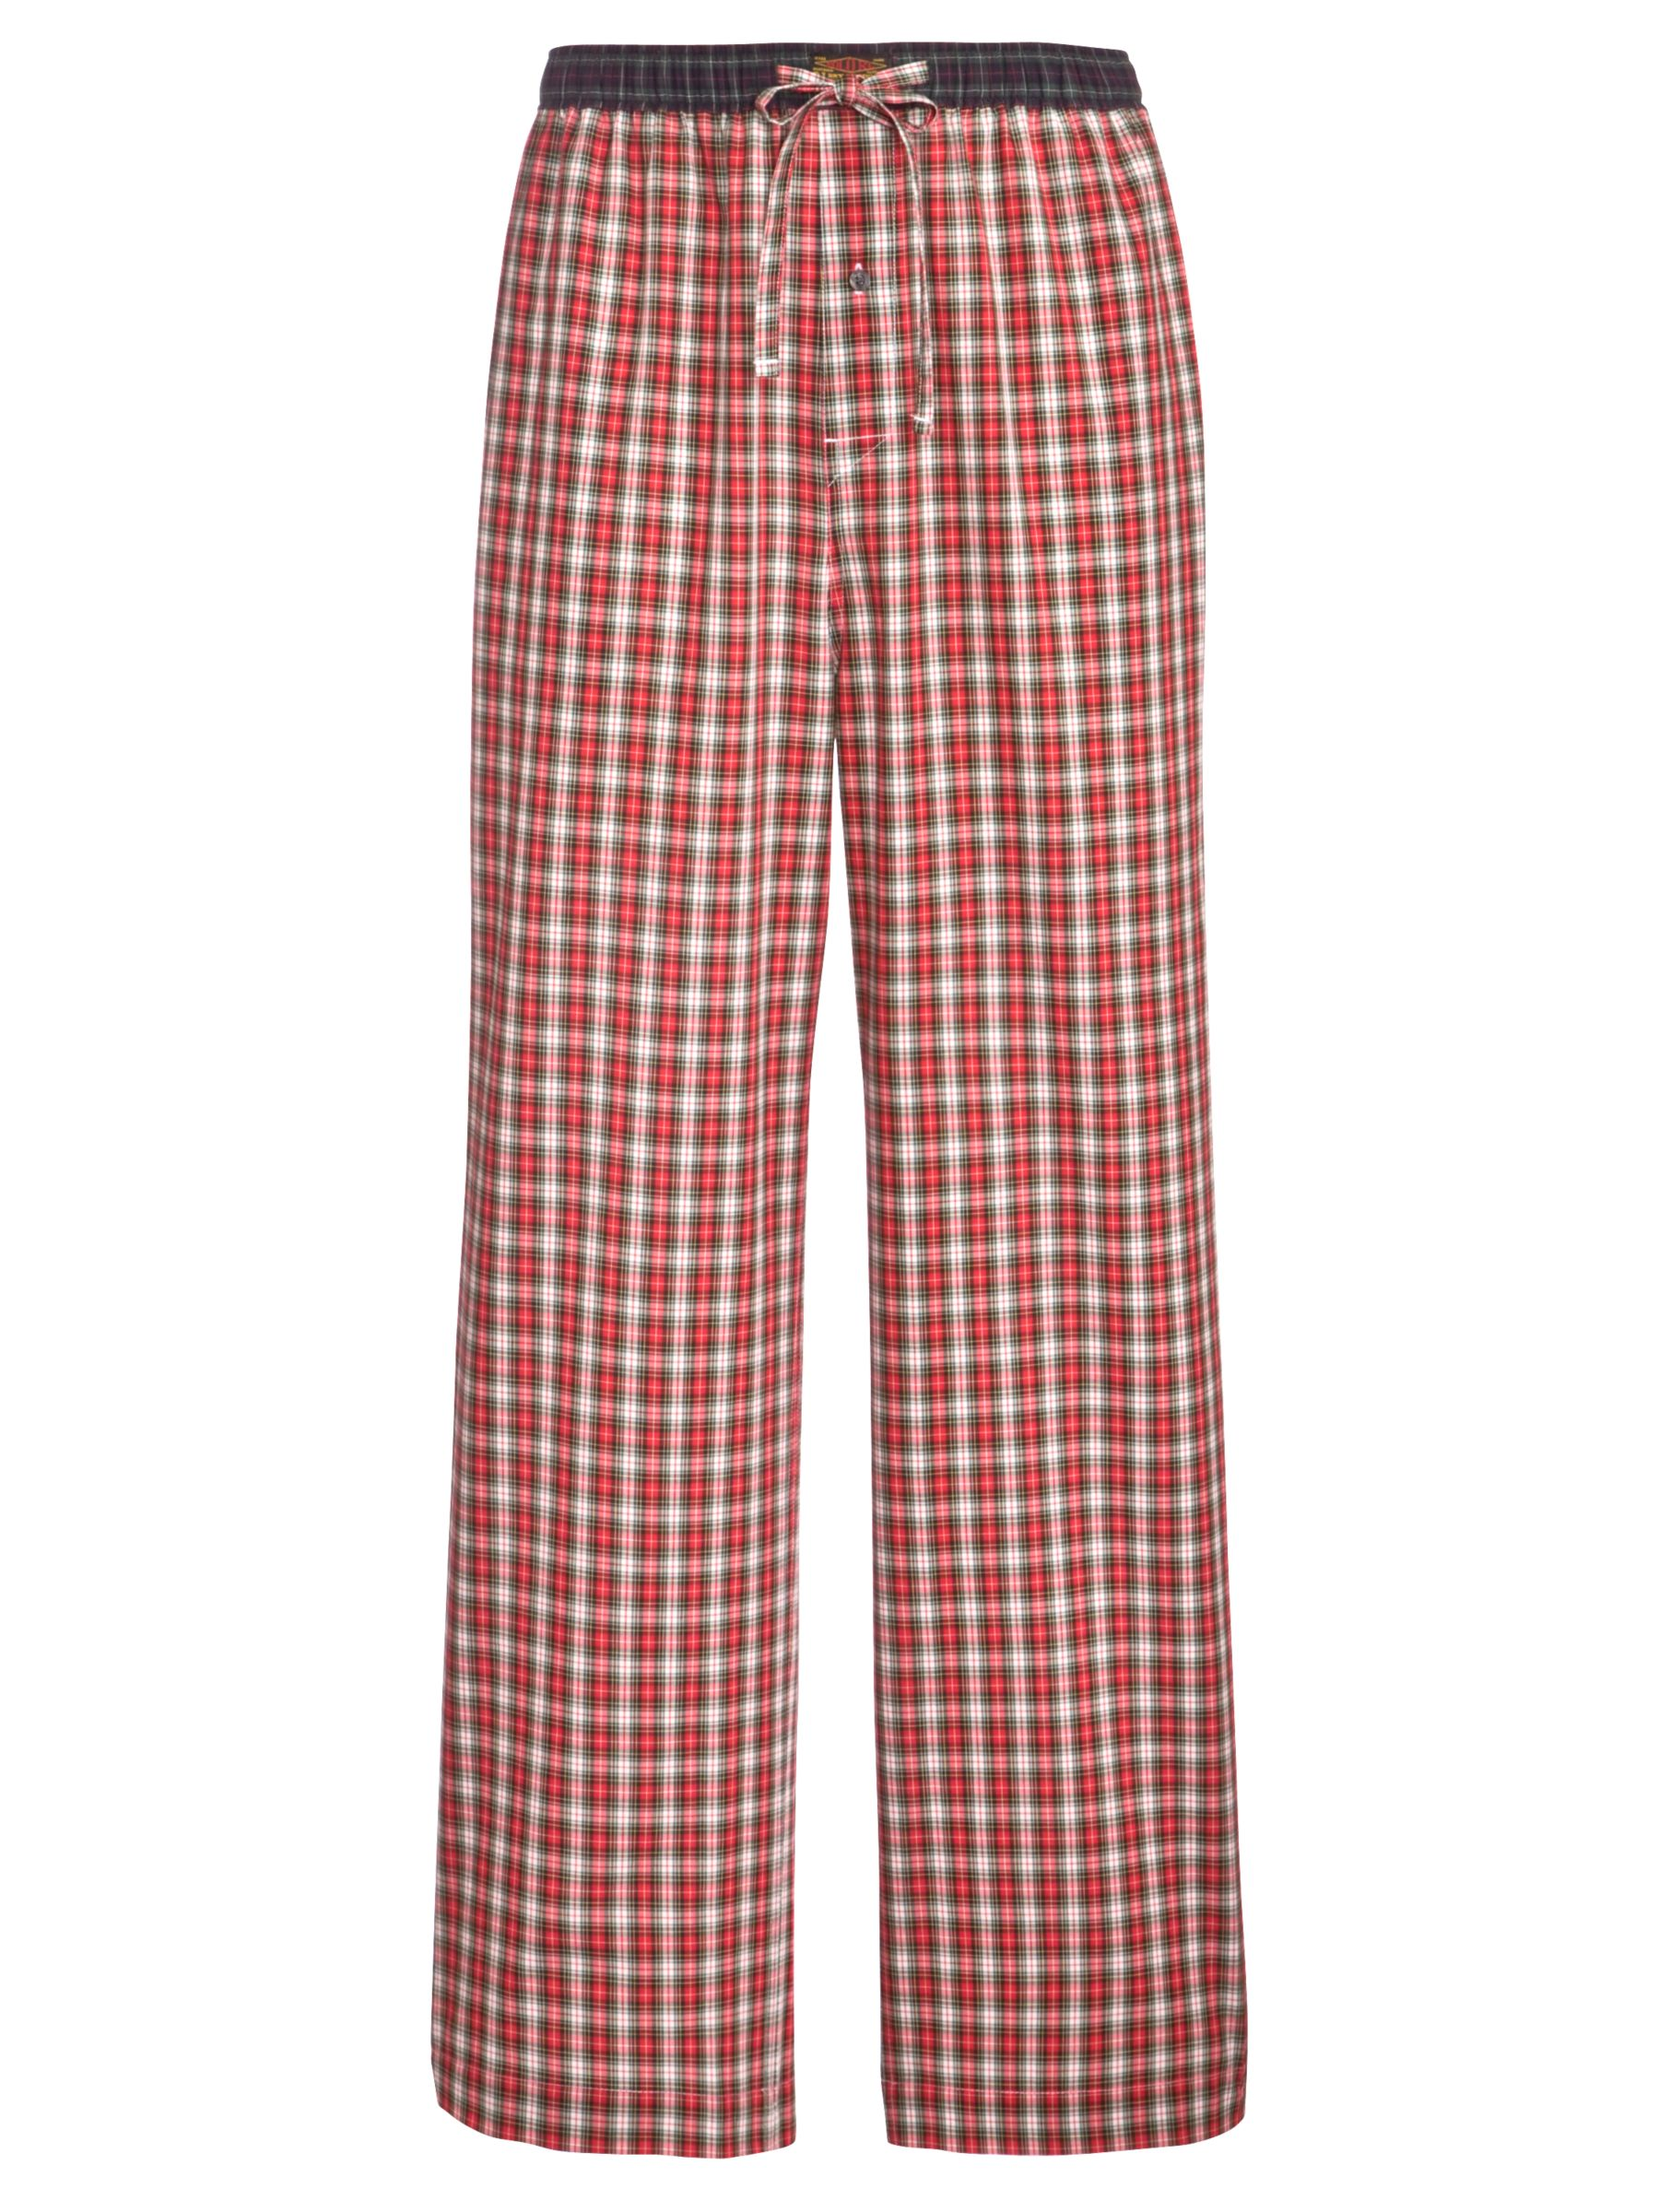 Polo Ralph Lauren Woven Plaid Pyjama Pants, Red